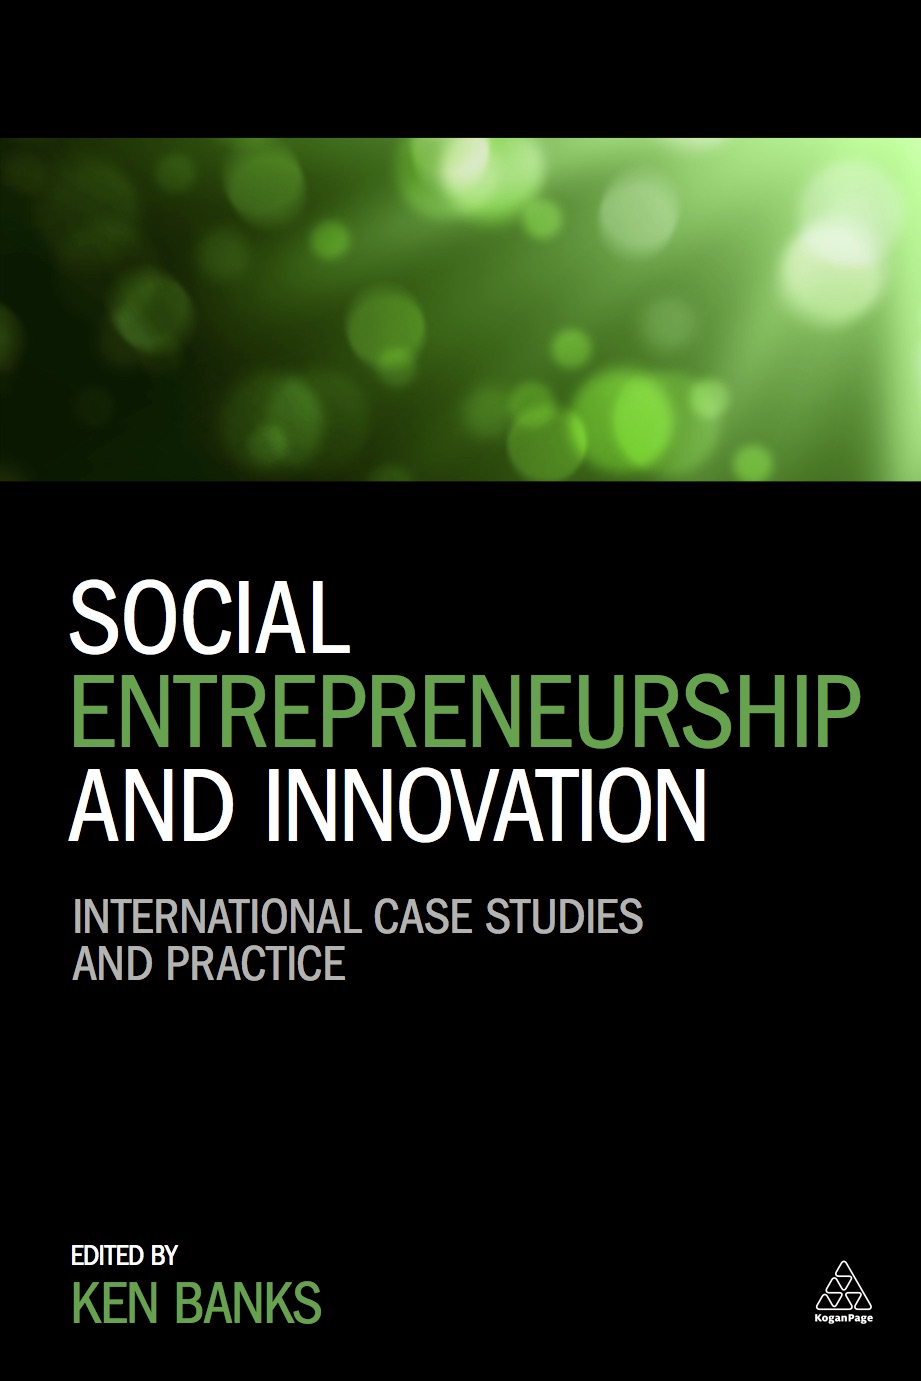 "case study of rural and social entrepreneurship in india Caste and entrepreneurship in india case studies show that ""the across all the large states of india, and was present in both rural and urban settings."